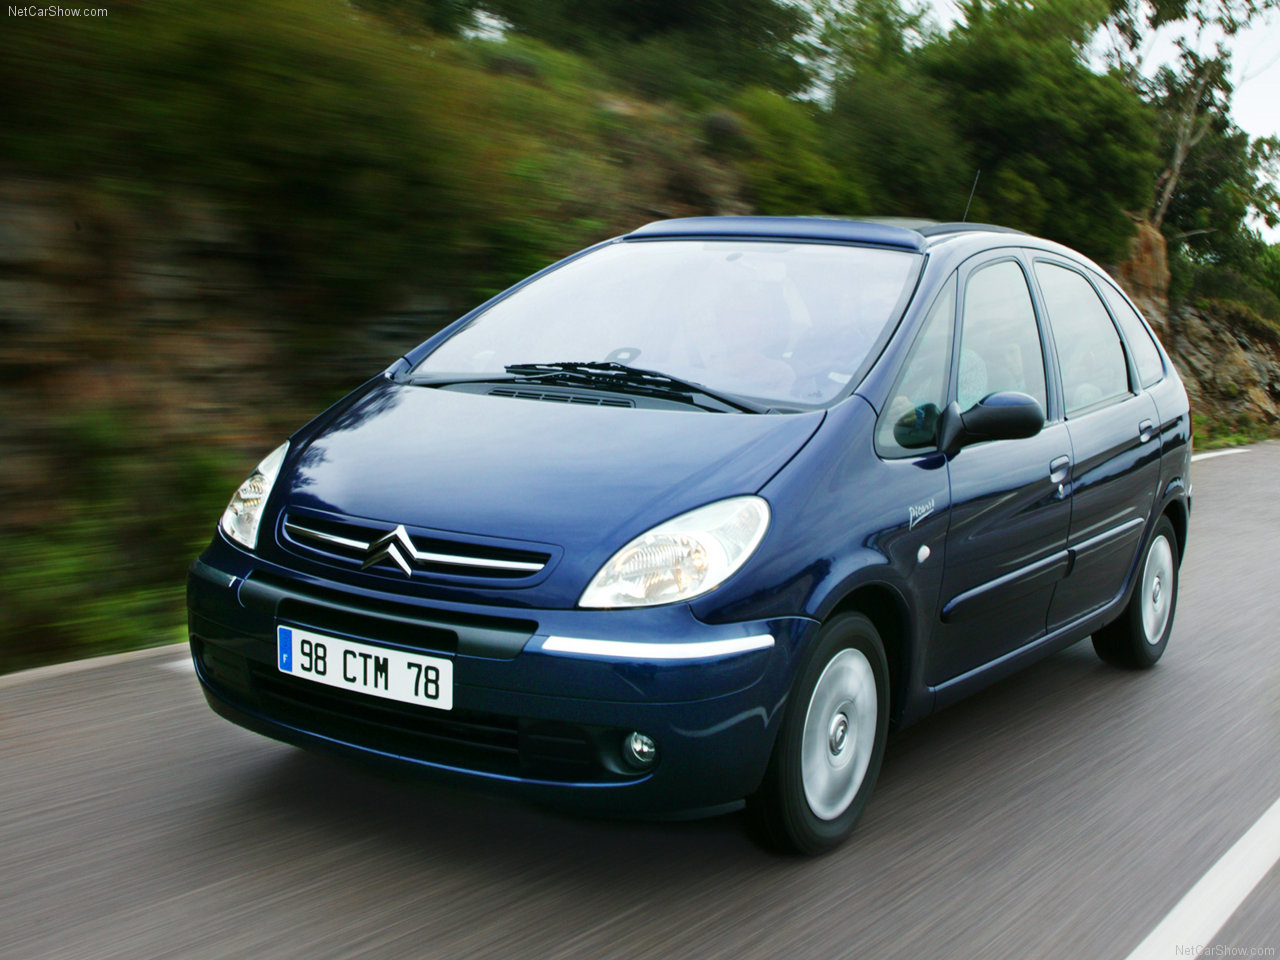 2004 citroen xsara picasso. Black Bedroom Furniture Sets. Home Design Ideas